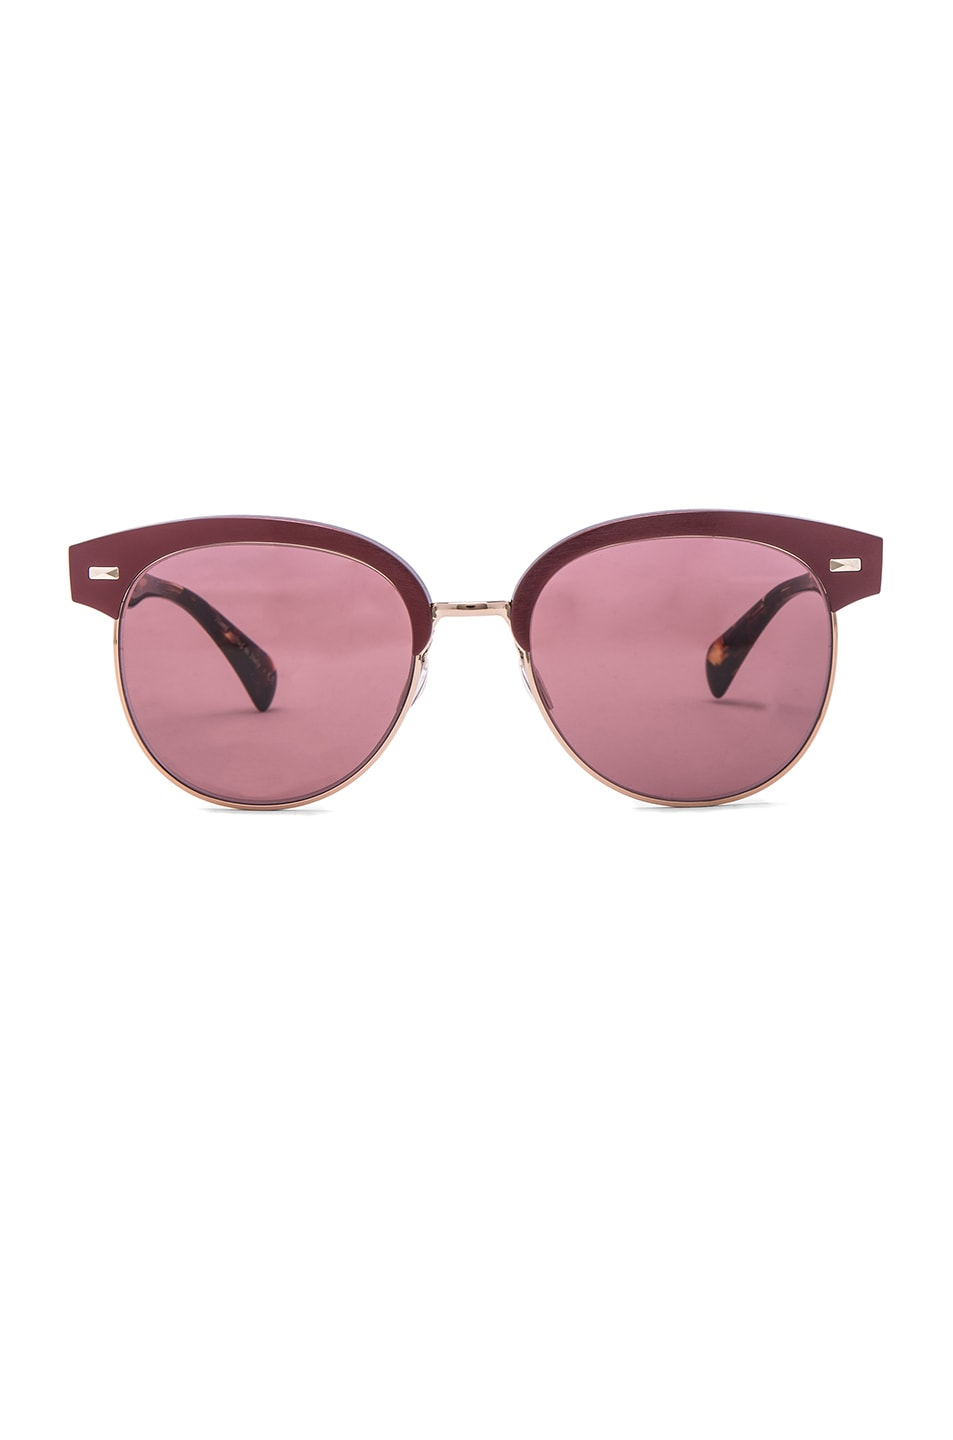 Image 1 of Oliver Peoples Shaelie Sunglasses in Burgundy & Brushed Rose Gold